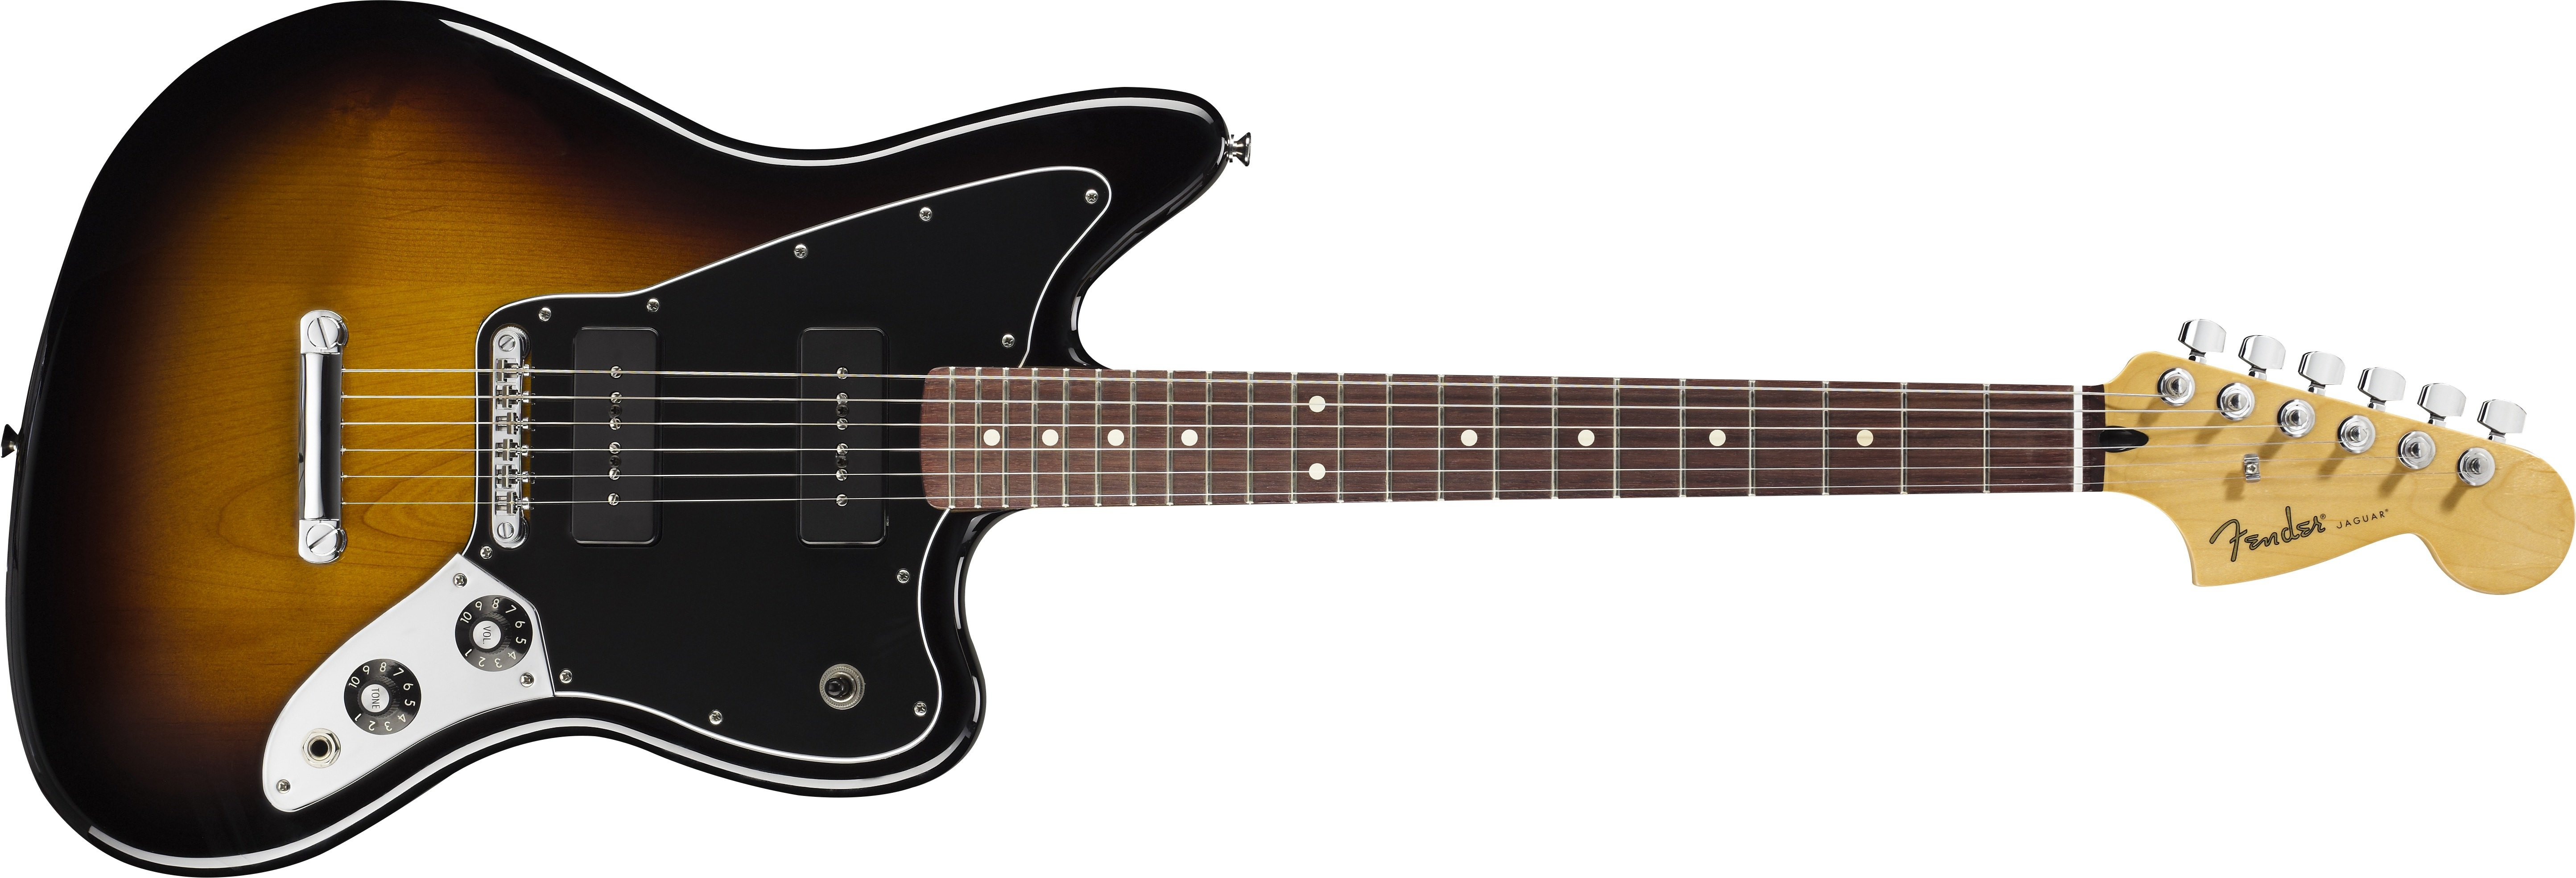 Fender Jaguar Guitar Wiring Diagram Hecho Charming 1965 Mustang Contemporary Comfortable Images Electrical